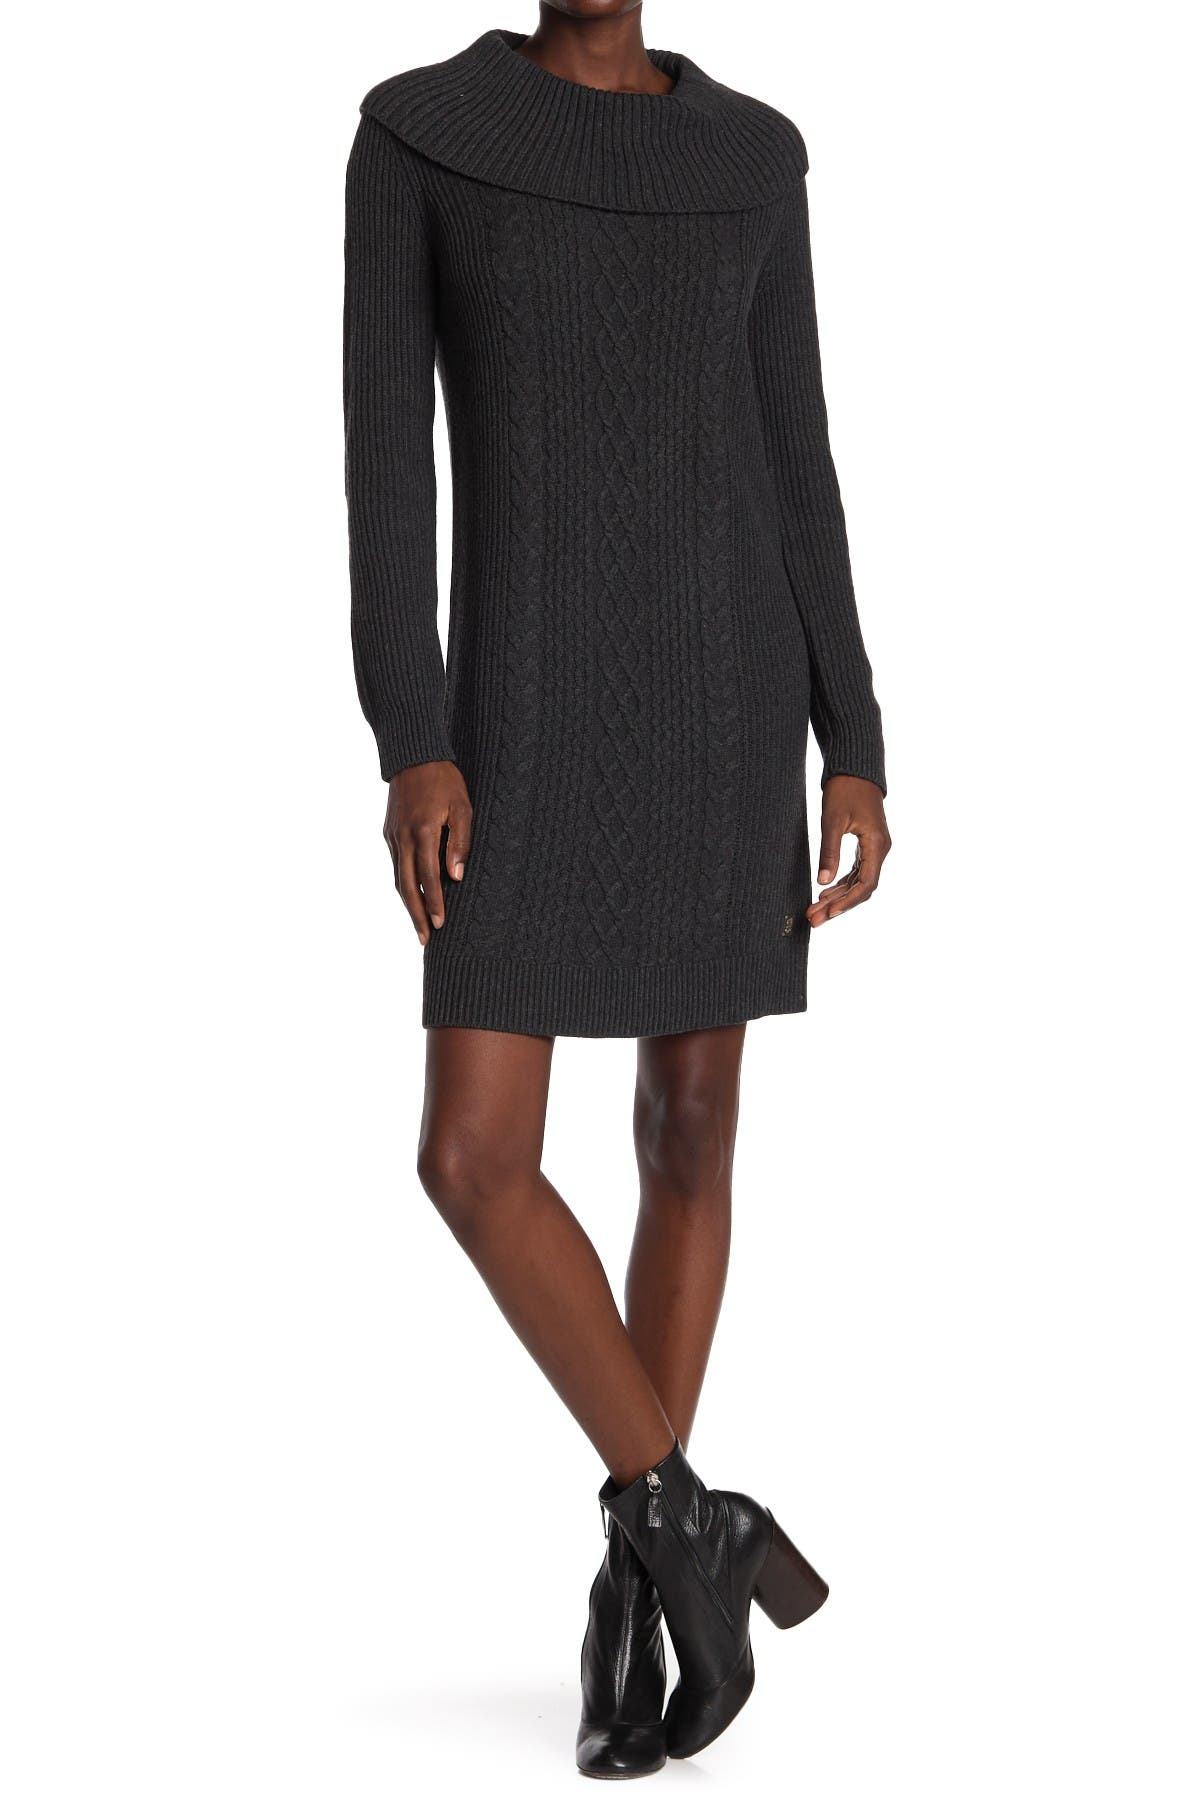 Image of Tommy Hilfiger Cable Knit Cowl Neck Sweater Dress